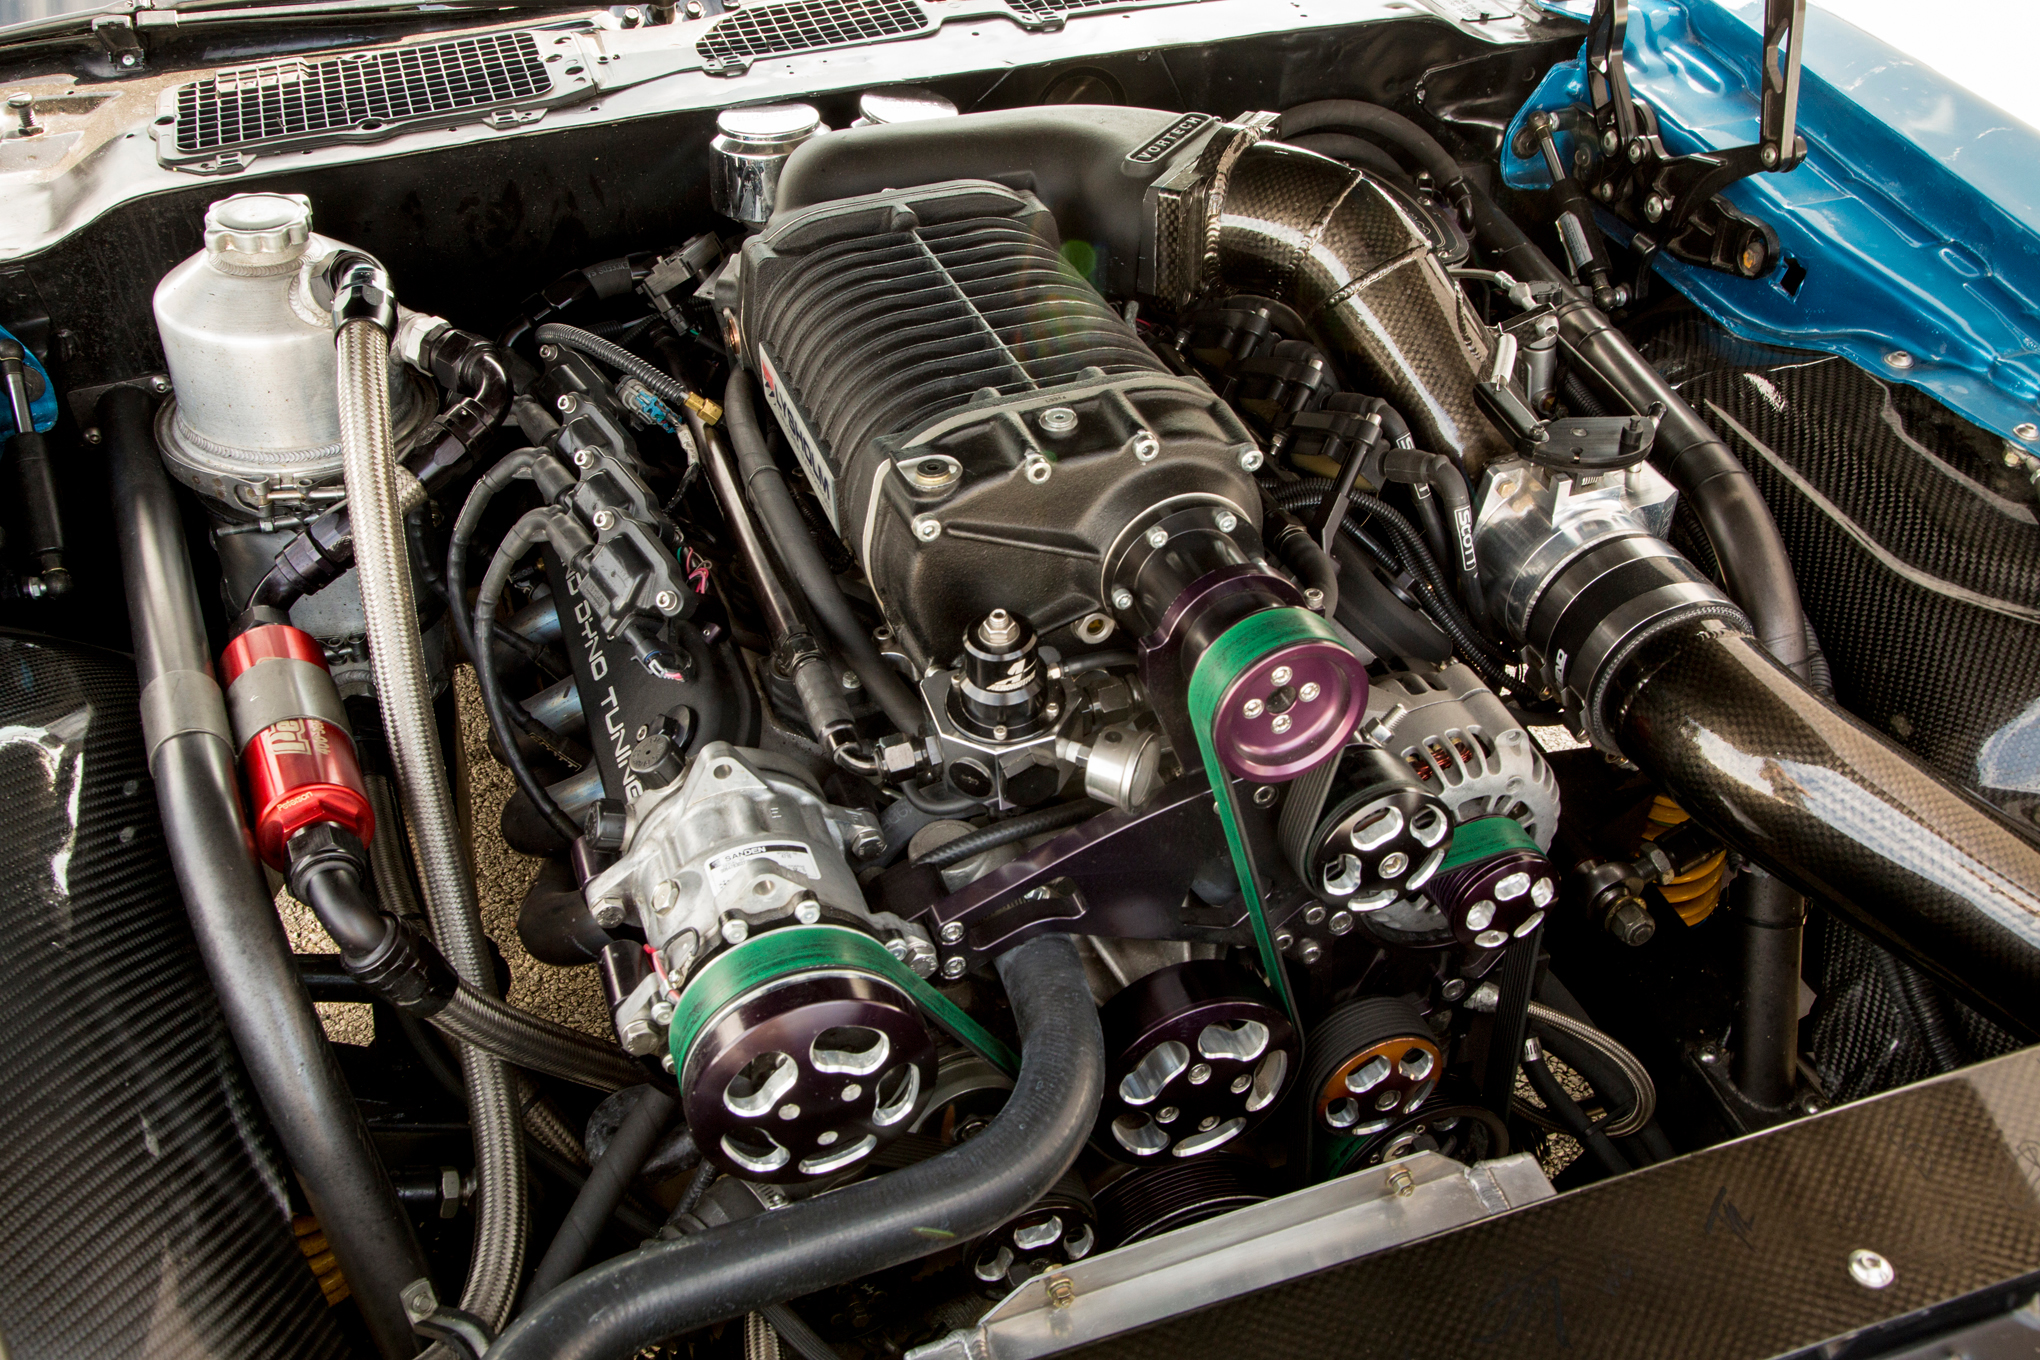 Under the hood of the 1980 Pontiac lived a West Bend Dyno-tuned 416ci LS. With some help from the Lysholm supercharger and a healthy diet of E85 fuel, it cranks out more than 1,000 horsepower.